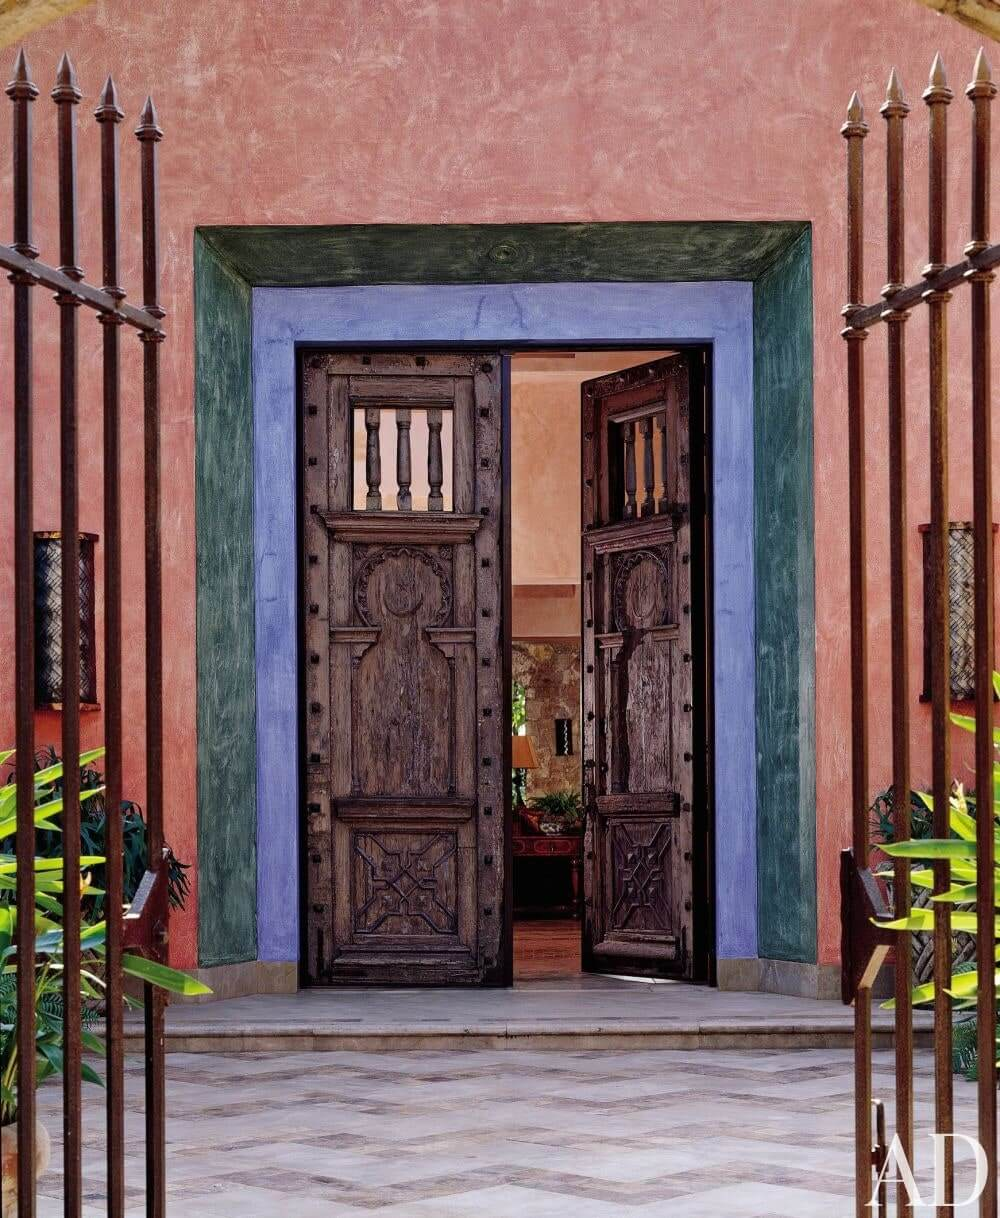 WOODEN DOOR ENTRANCE ANTIQUE STYLE DESIGN IDEAS